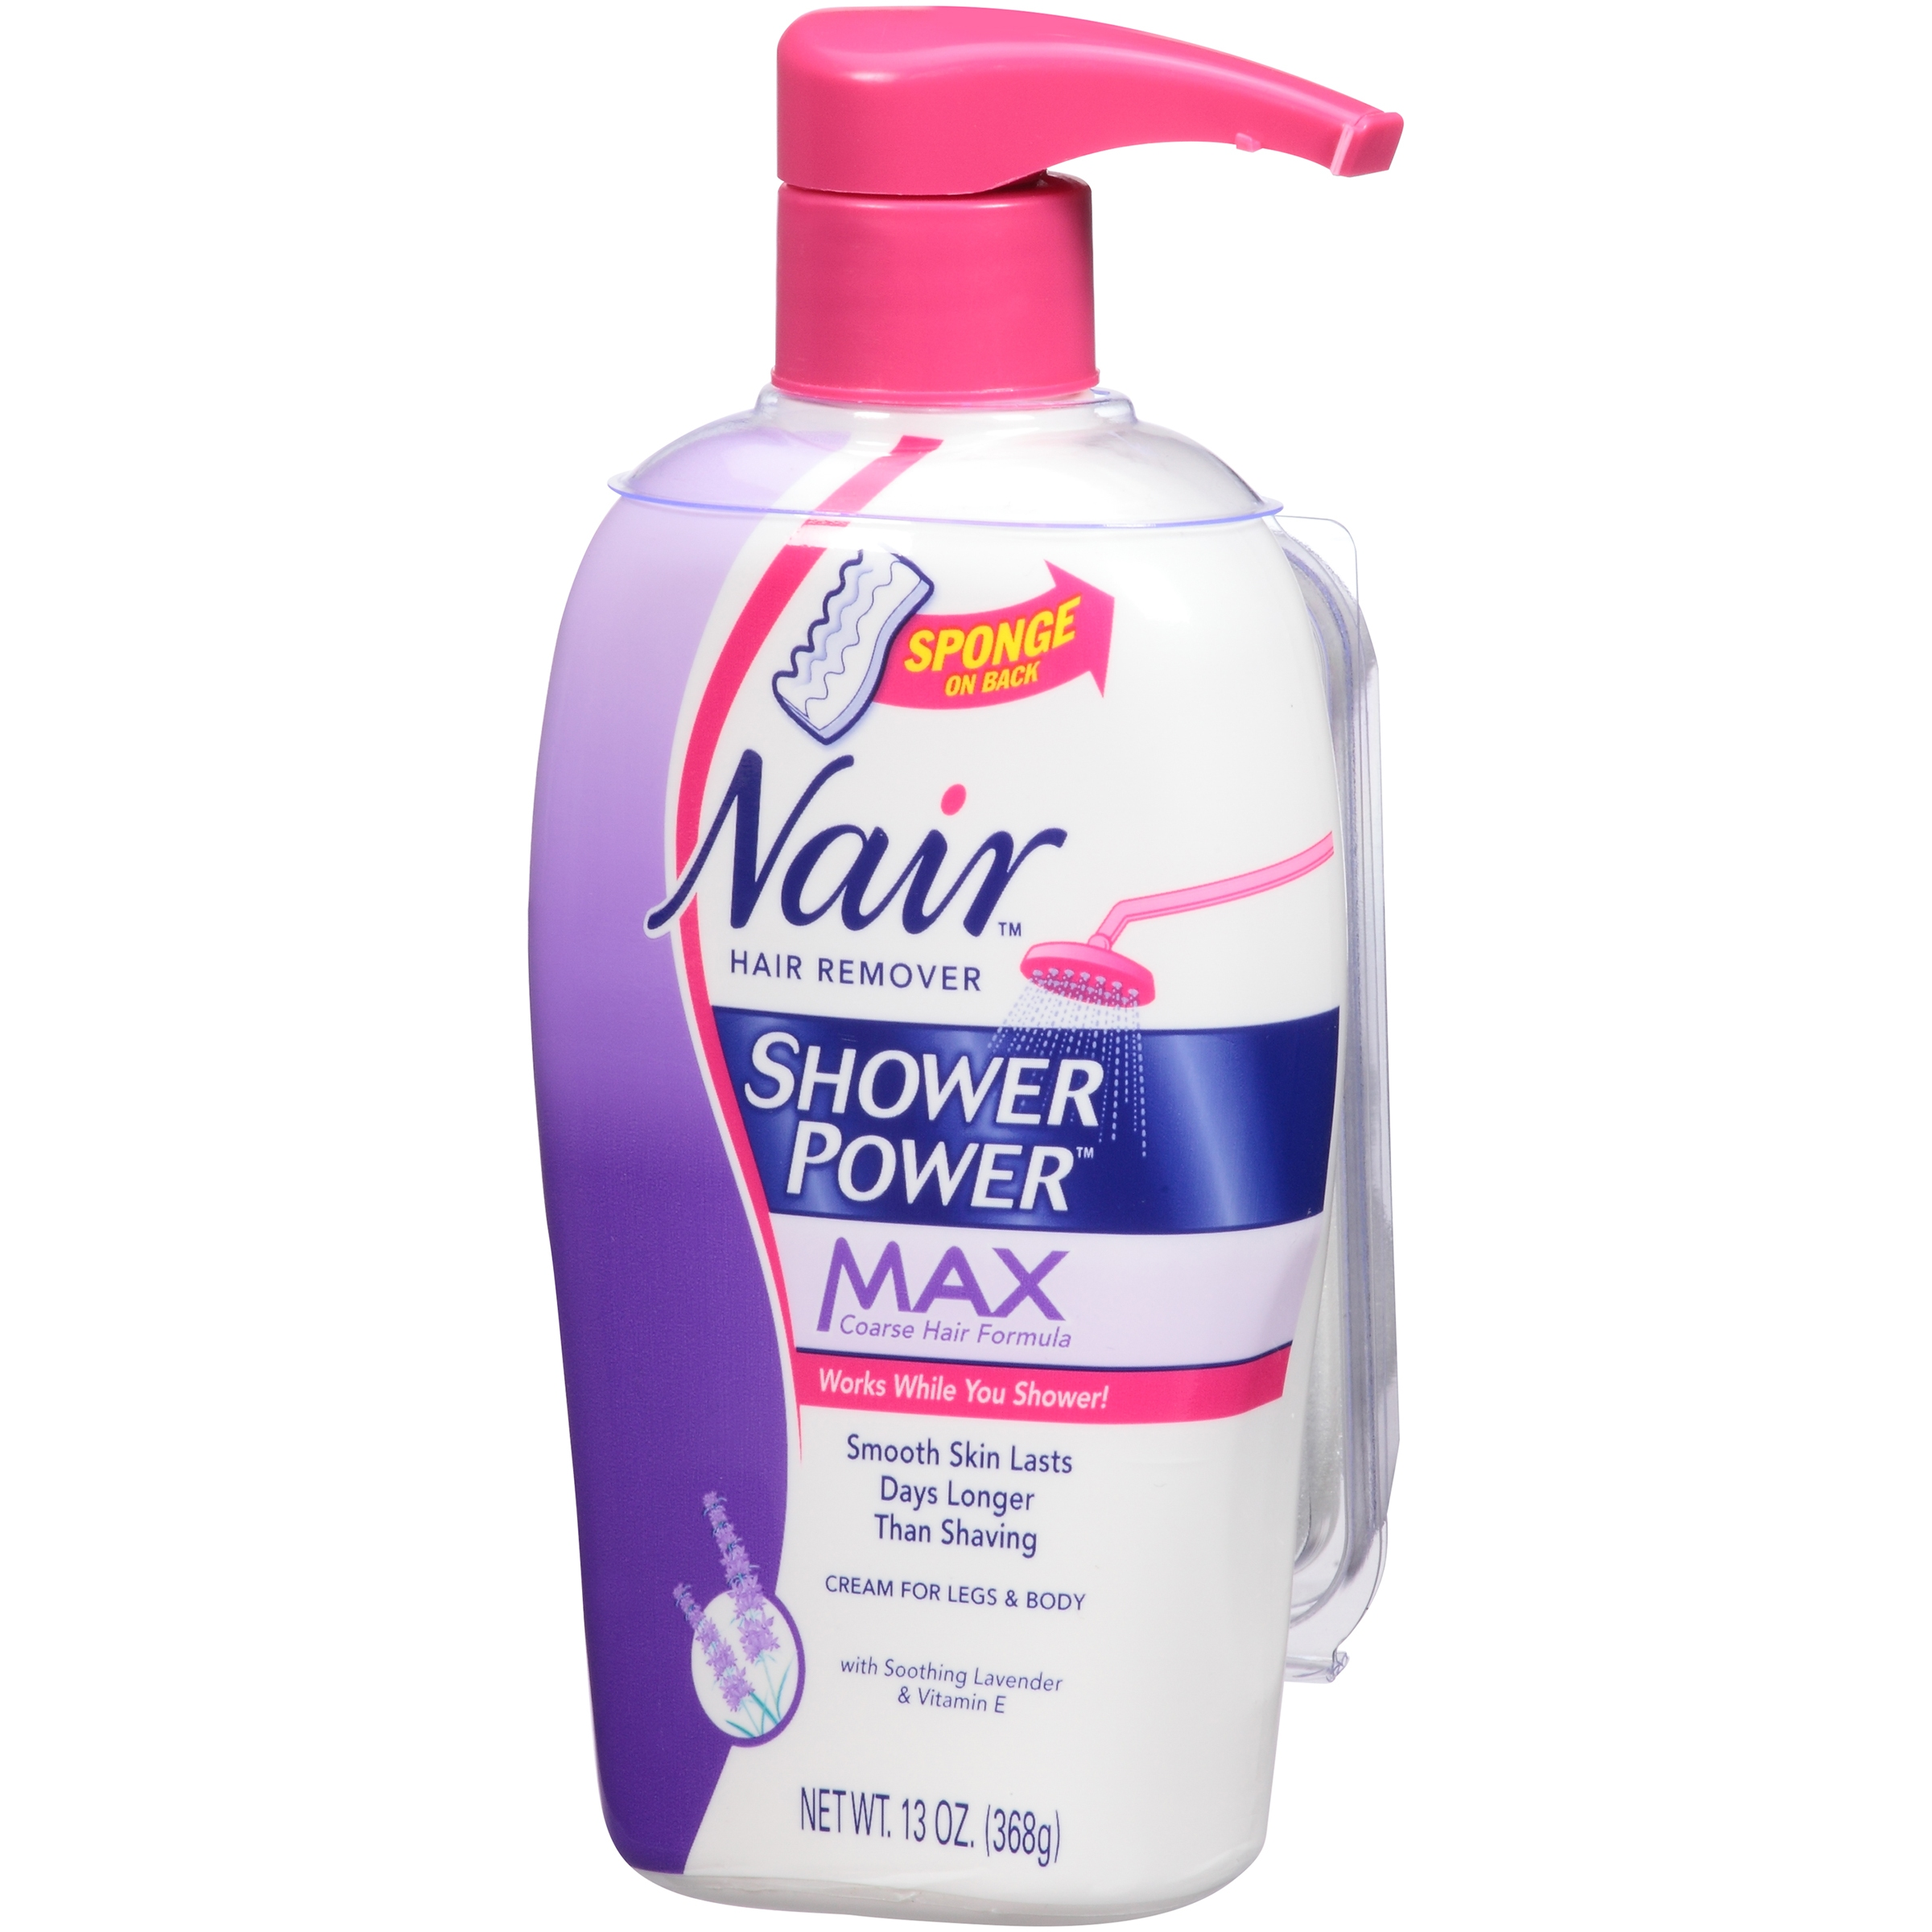 Nair Shower Power Max